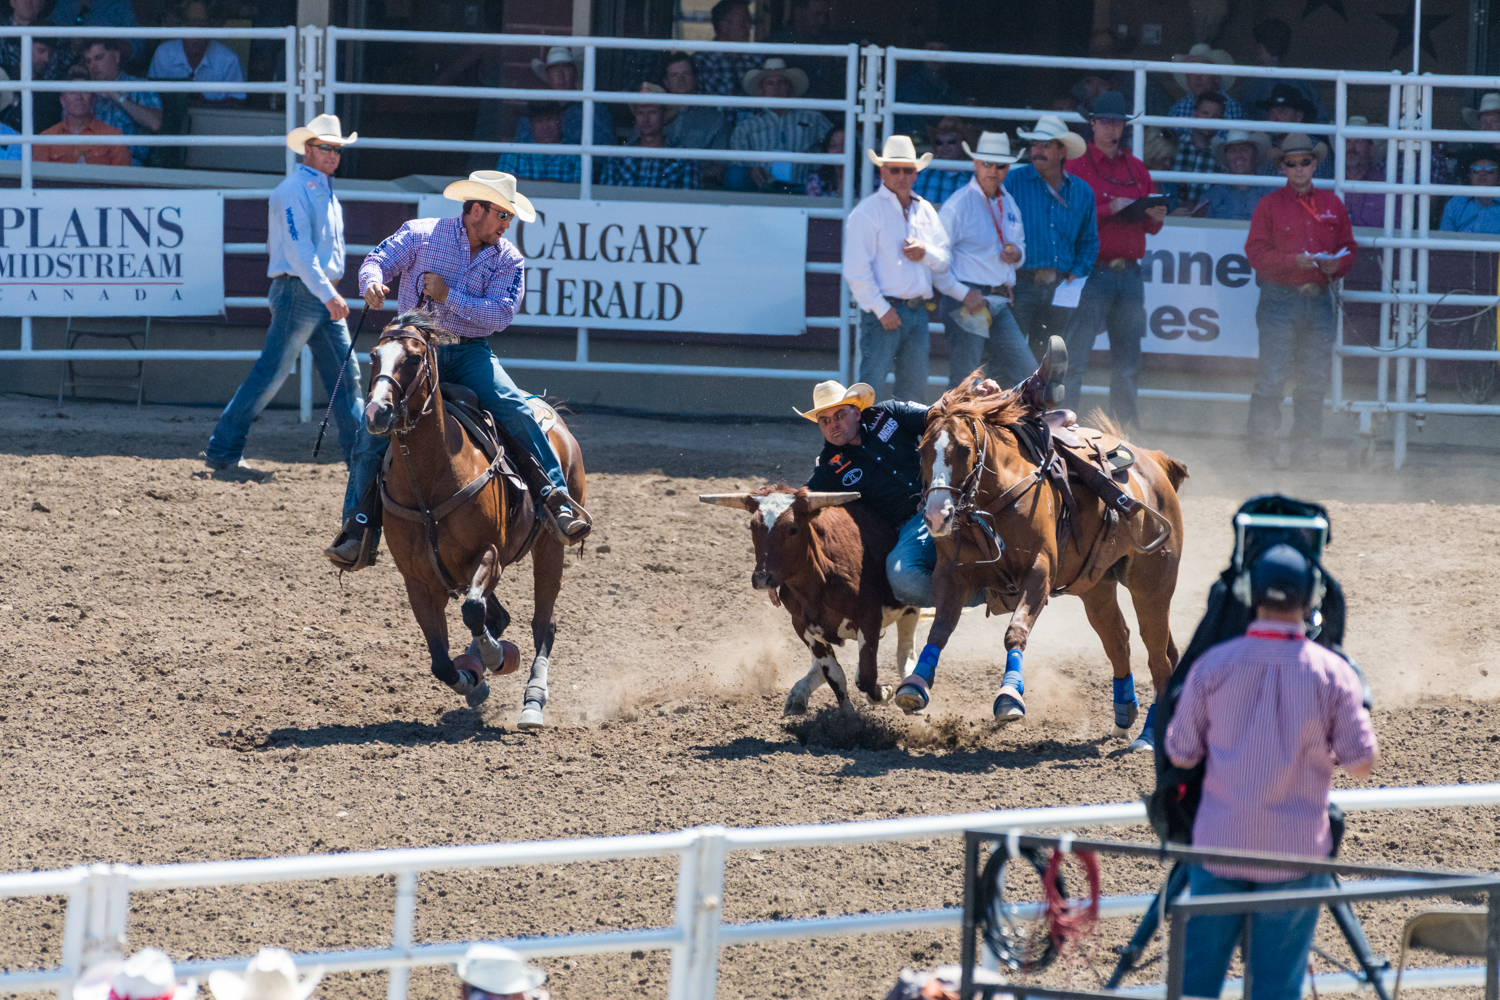 You could bring up the question of cruelty to the young bulls, although they didn't  seem  to mind. After they were knocked down the cowboy would let go and the bull would get up and continue to jog, with a almost slight look of confusion.